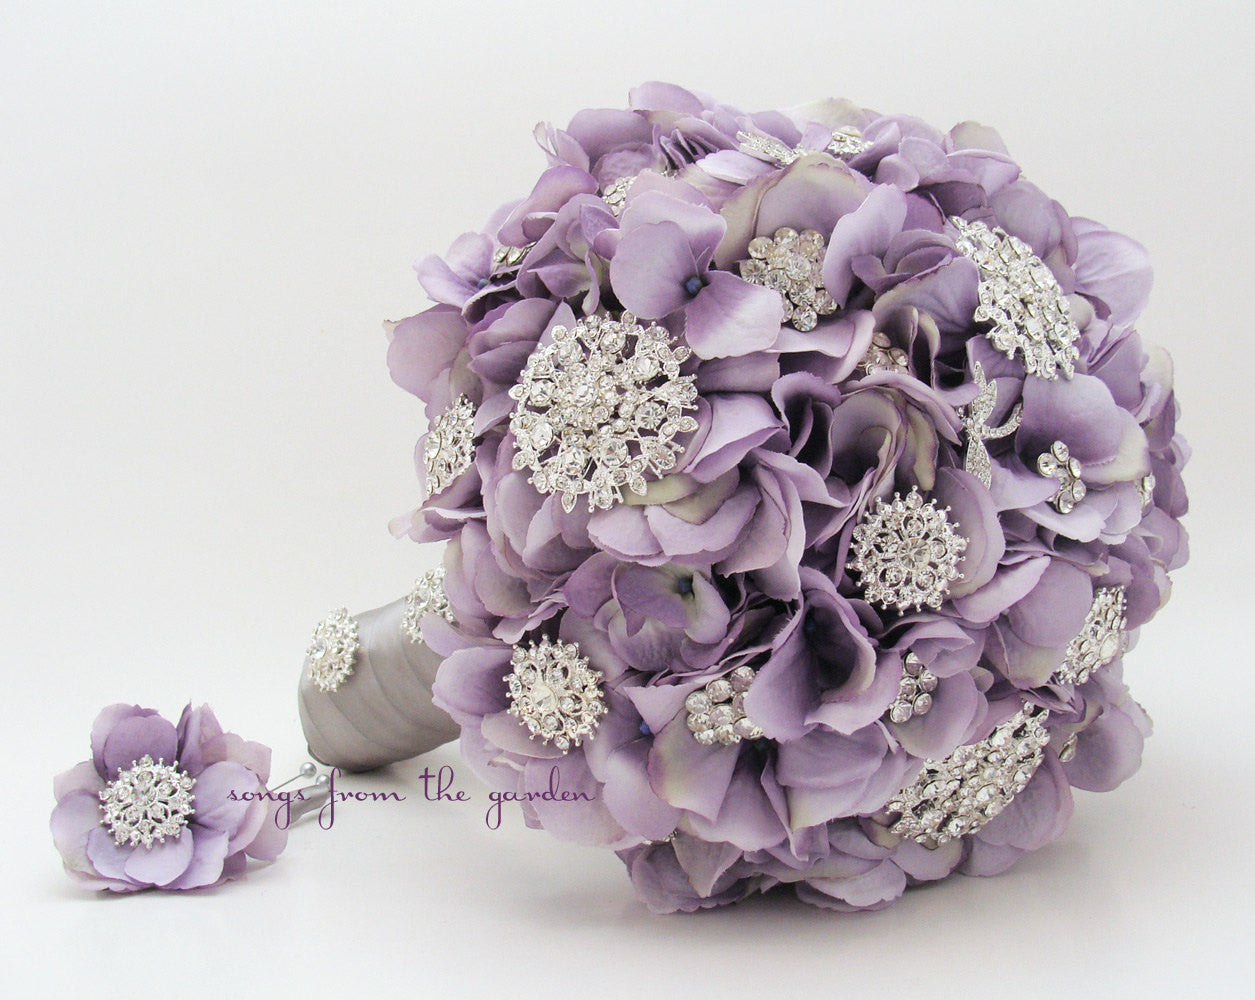 Brooches & Blooms Bridal Bouquet Lavender Silver Bouquet with ...